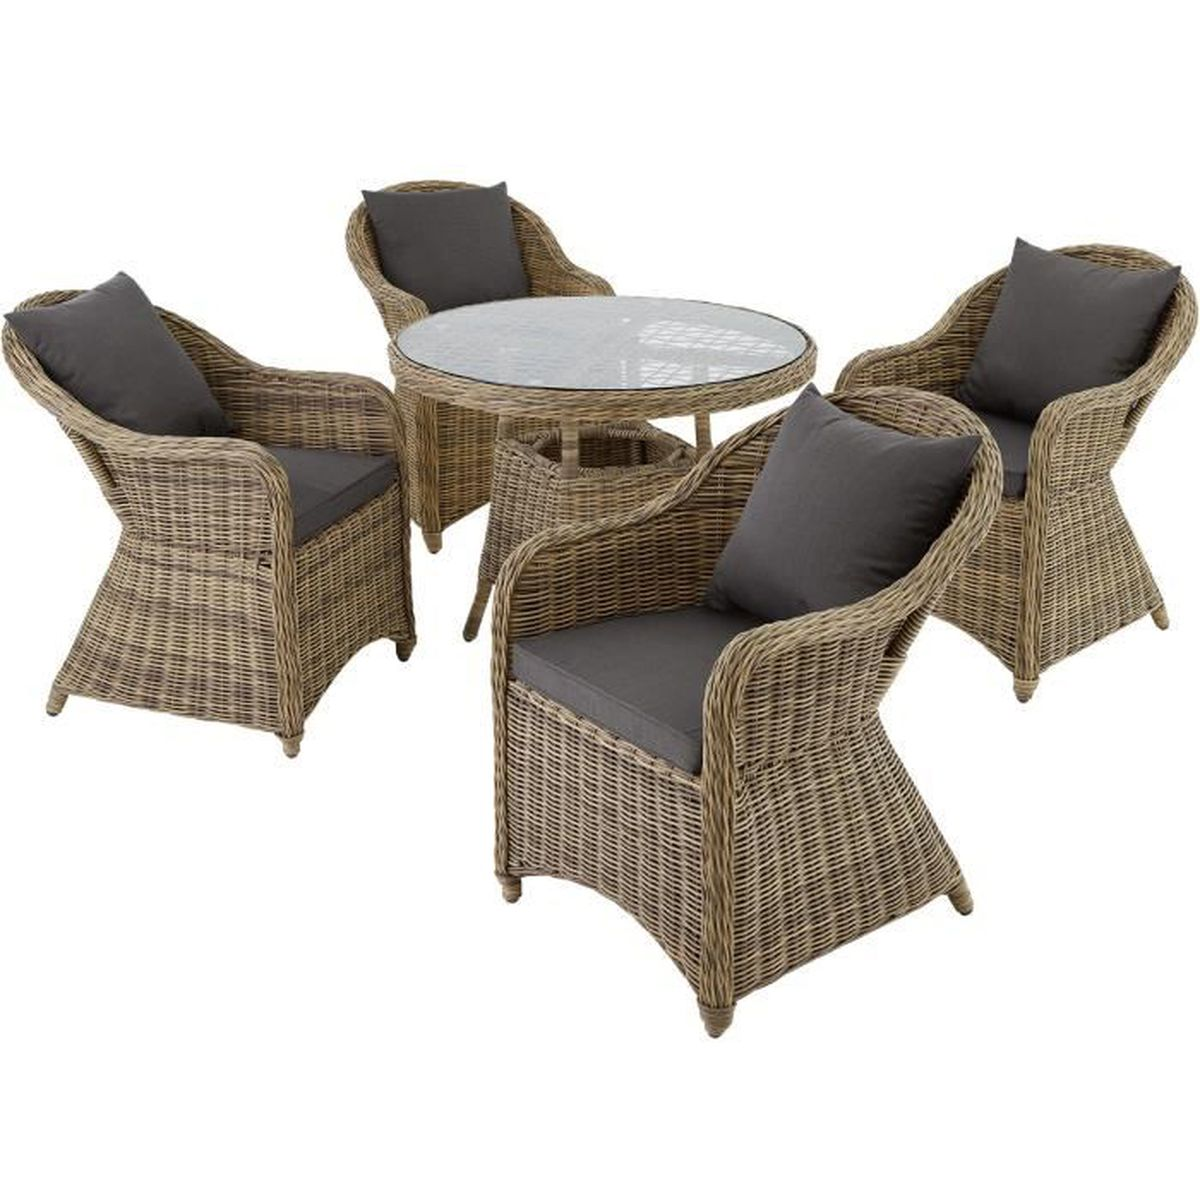 Salon de jardin zurich 4 chaises fauteuils 1 table ronde r sine tress e poly rotin structure - Table ronde salon de jardin ...